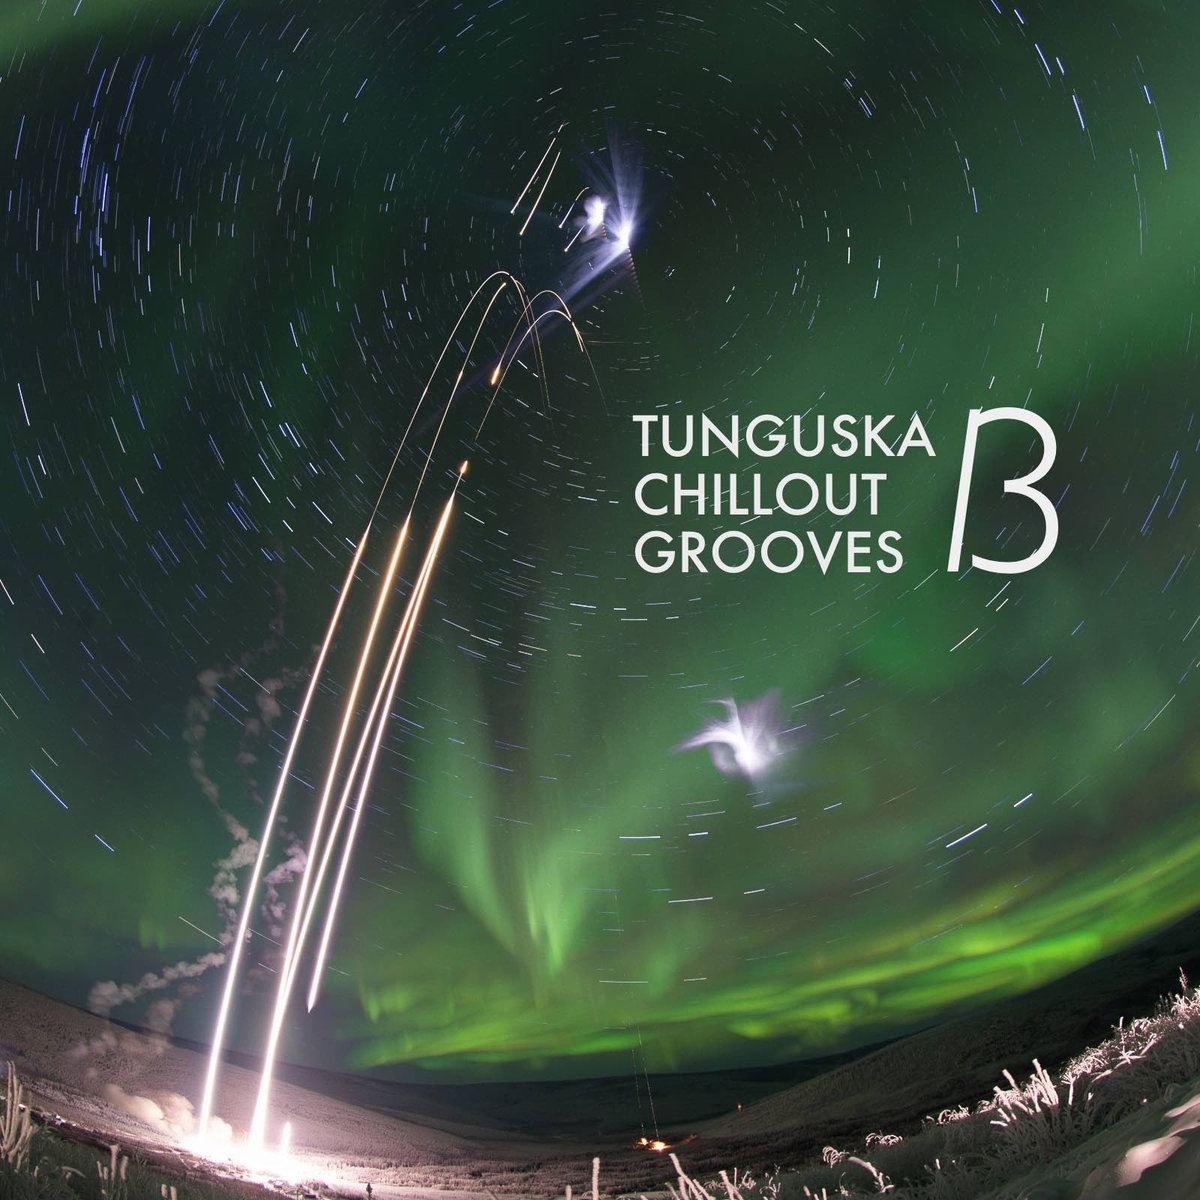 Gem Reflection - The Awakening of Consciousness @ 'Tunguska Chillout Grooves vol.13' album (electronic, ambient)